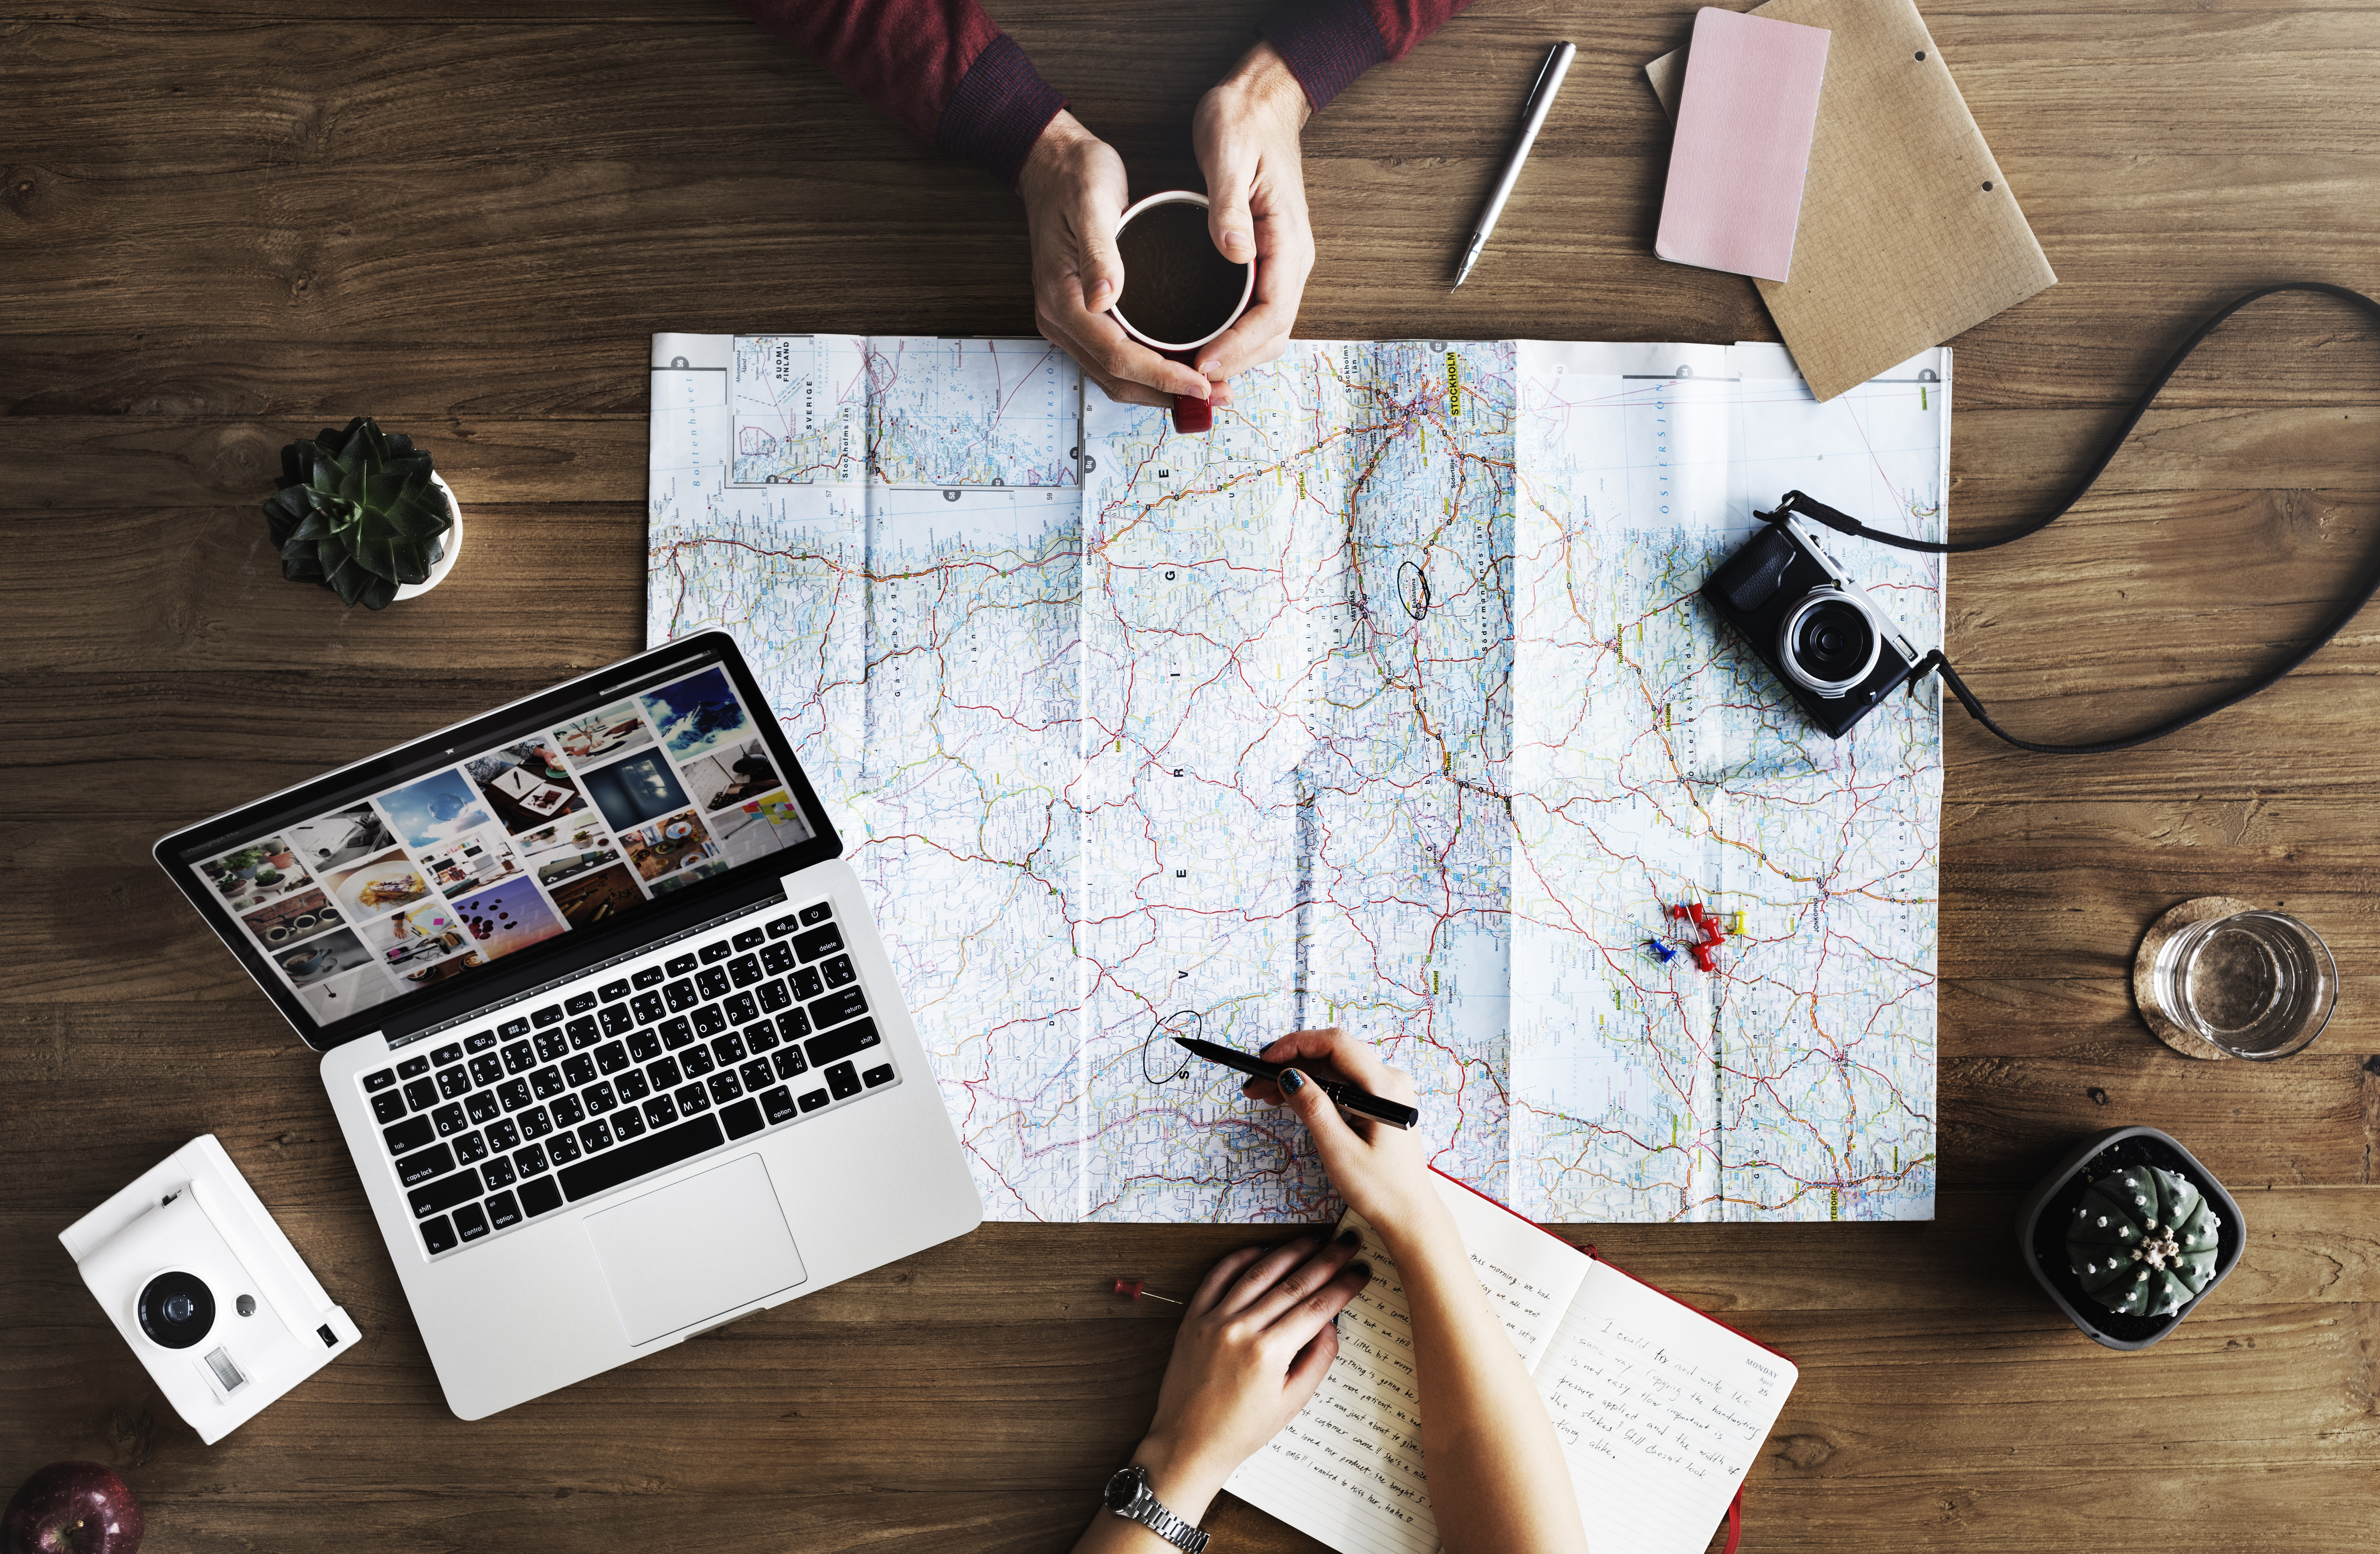 An overhead shot of two people planning a trip with a map and a laptop on a wooden surface